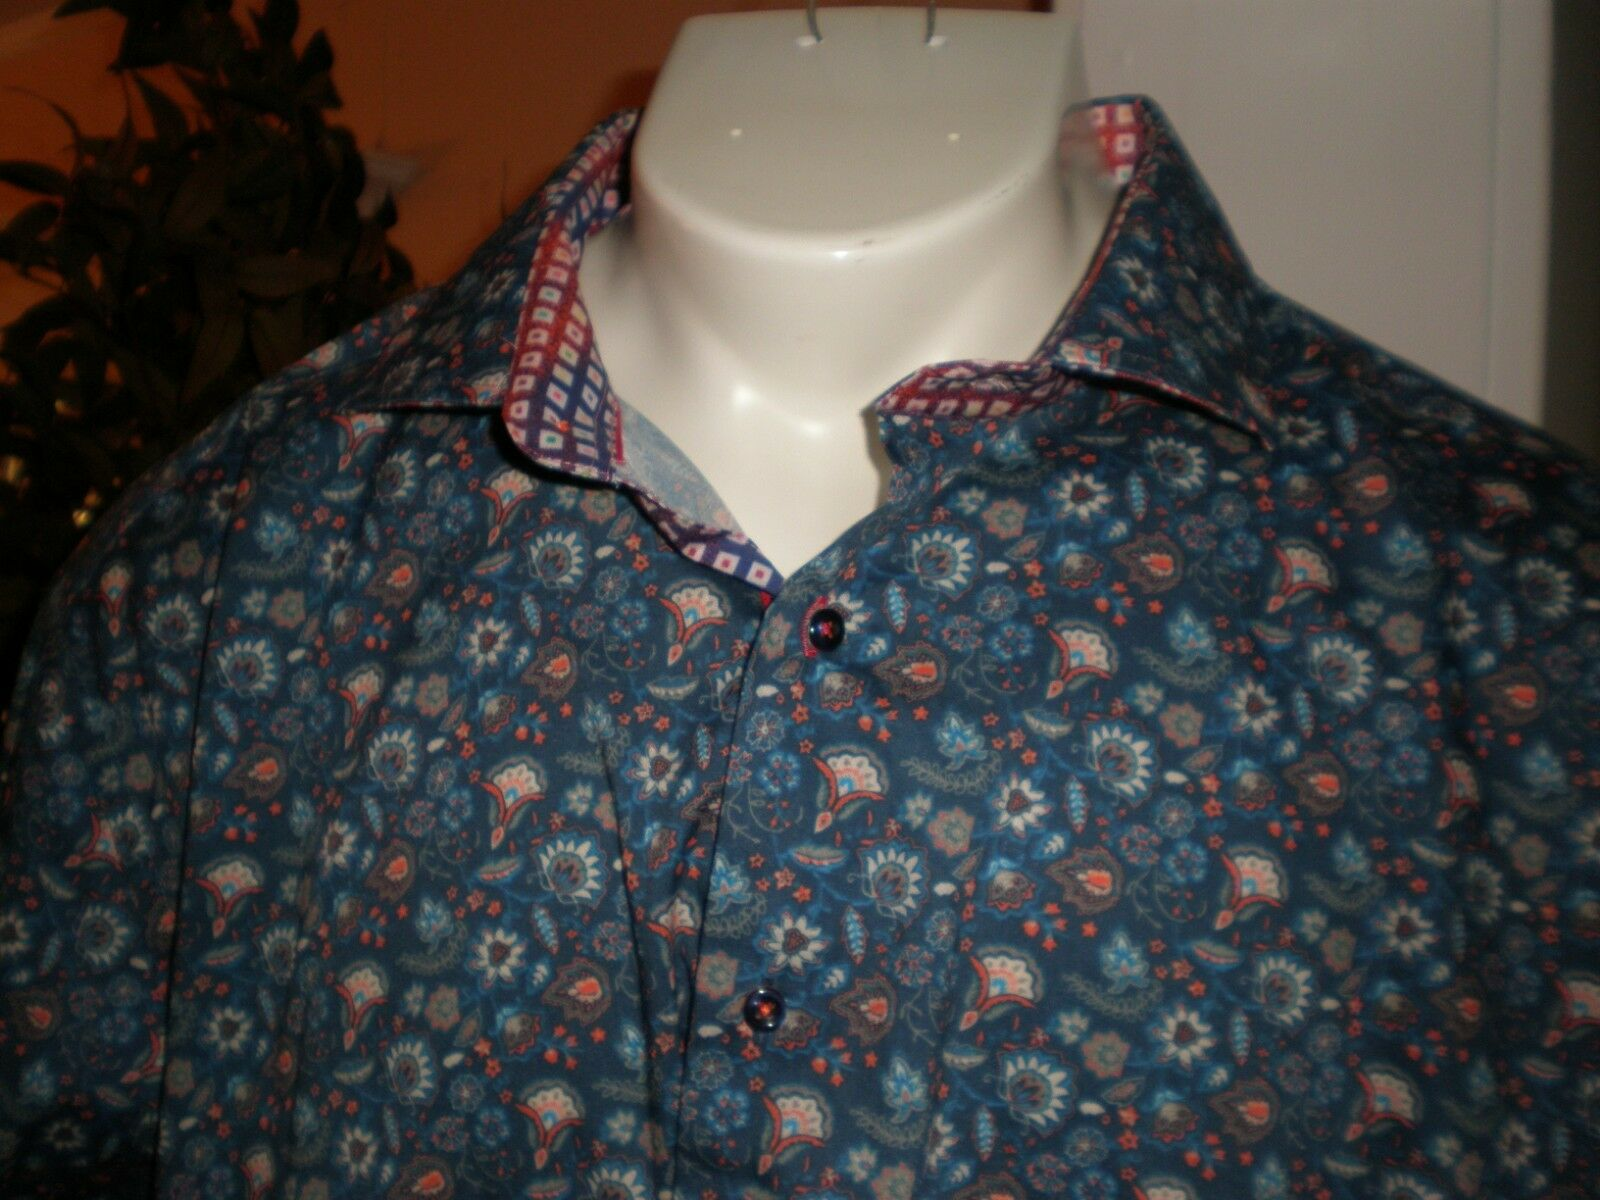 NWT DANIEL HECHTER MULTI-COLOR L S DRESS SHIRT SZ 3XLT 3XT XXXLT RETAIL